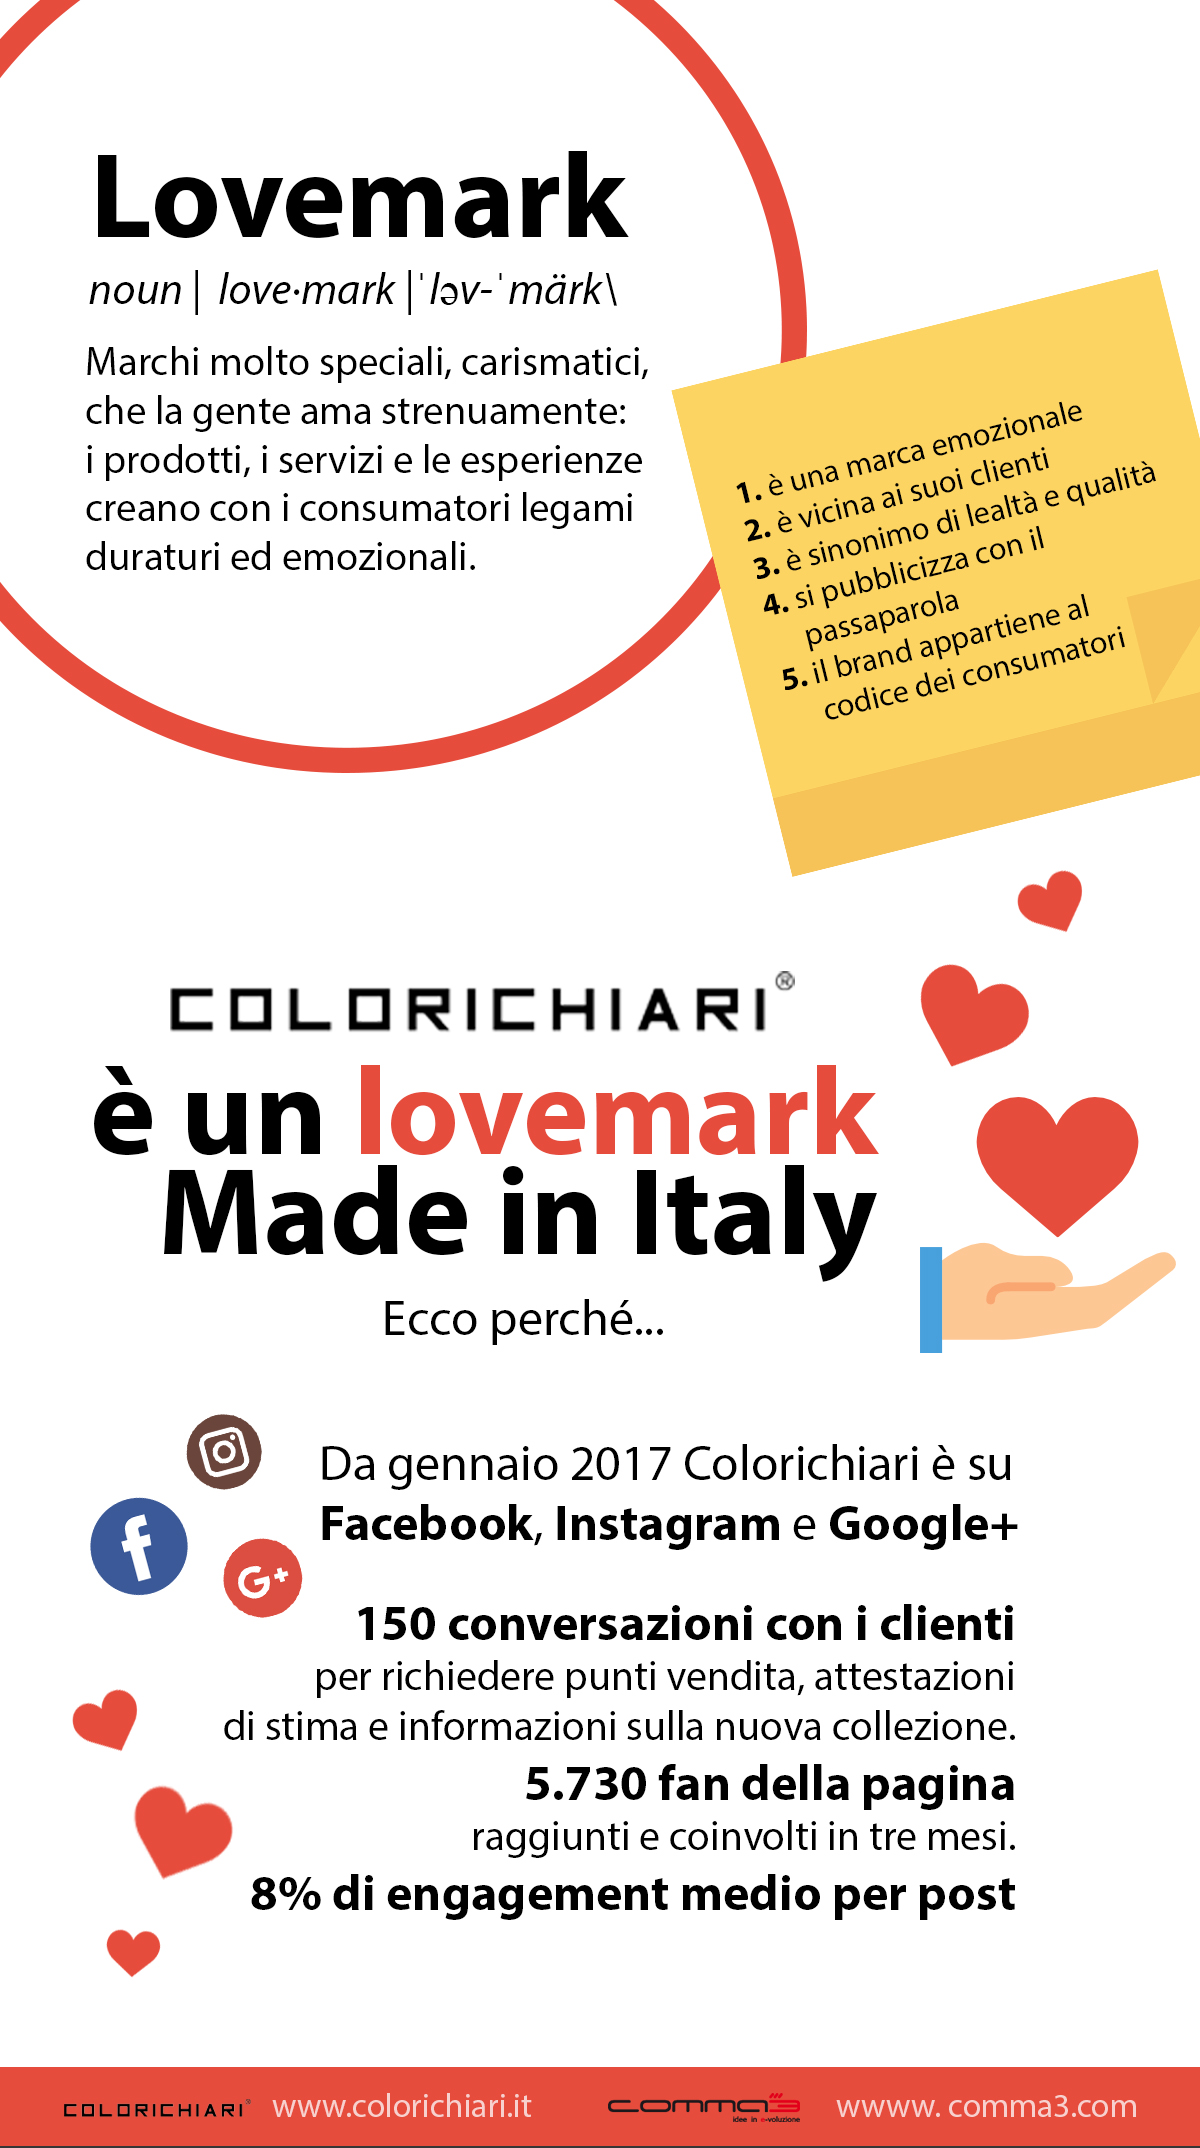 Colorichiari, un lovemark pugliese made in Italy